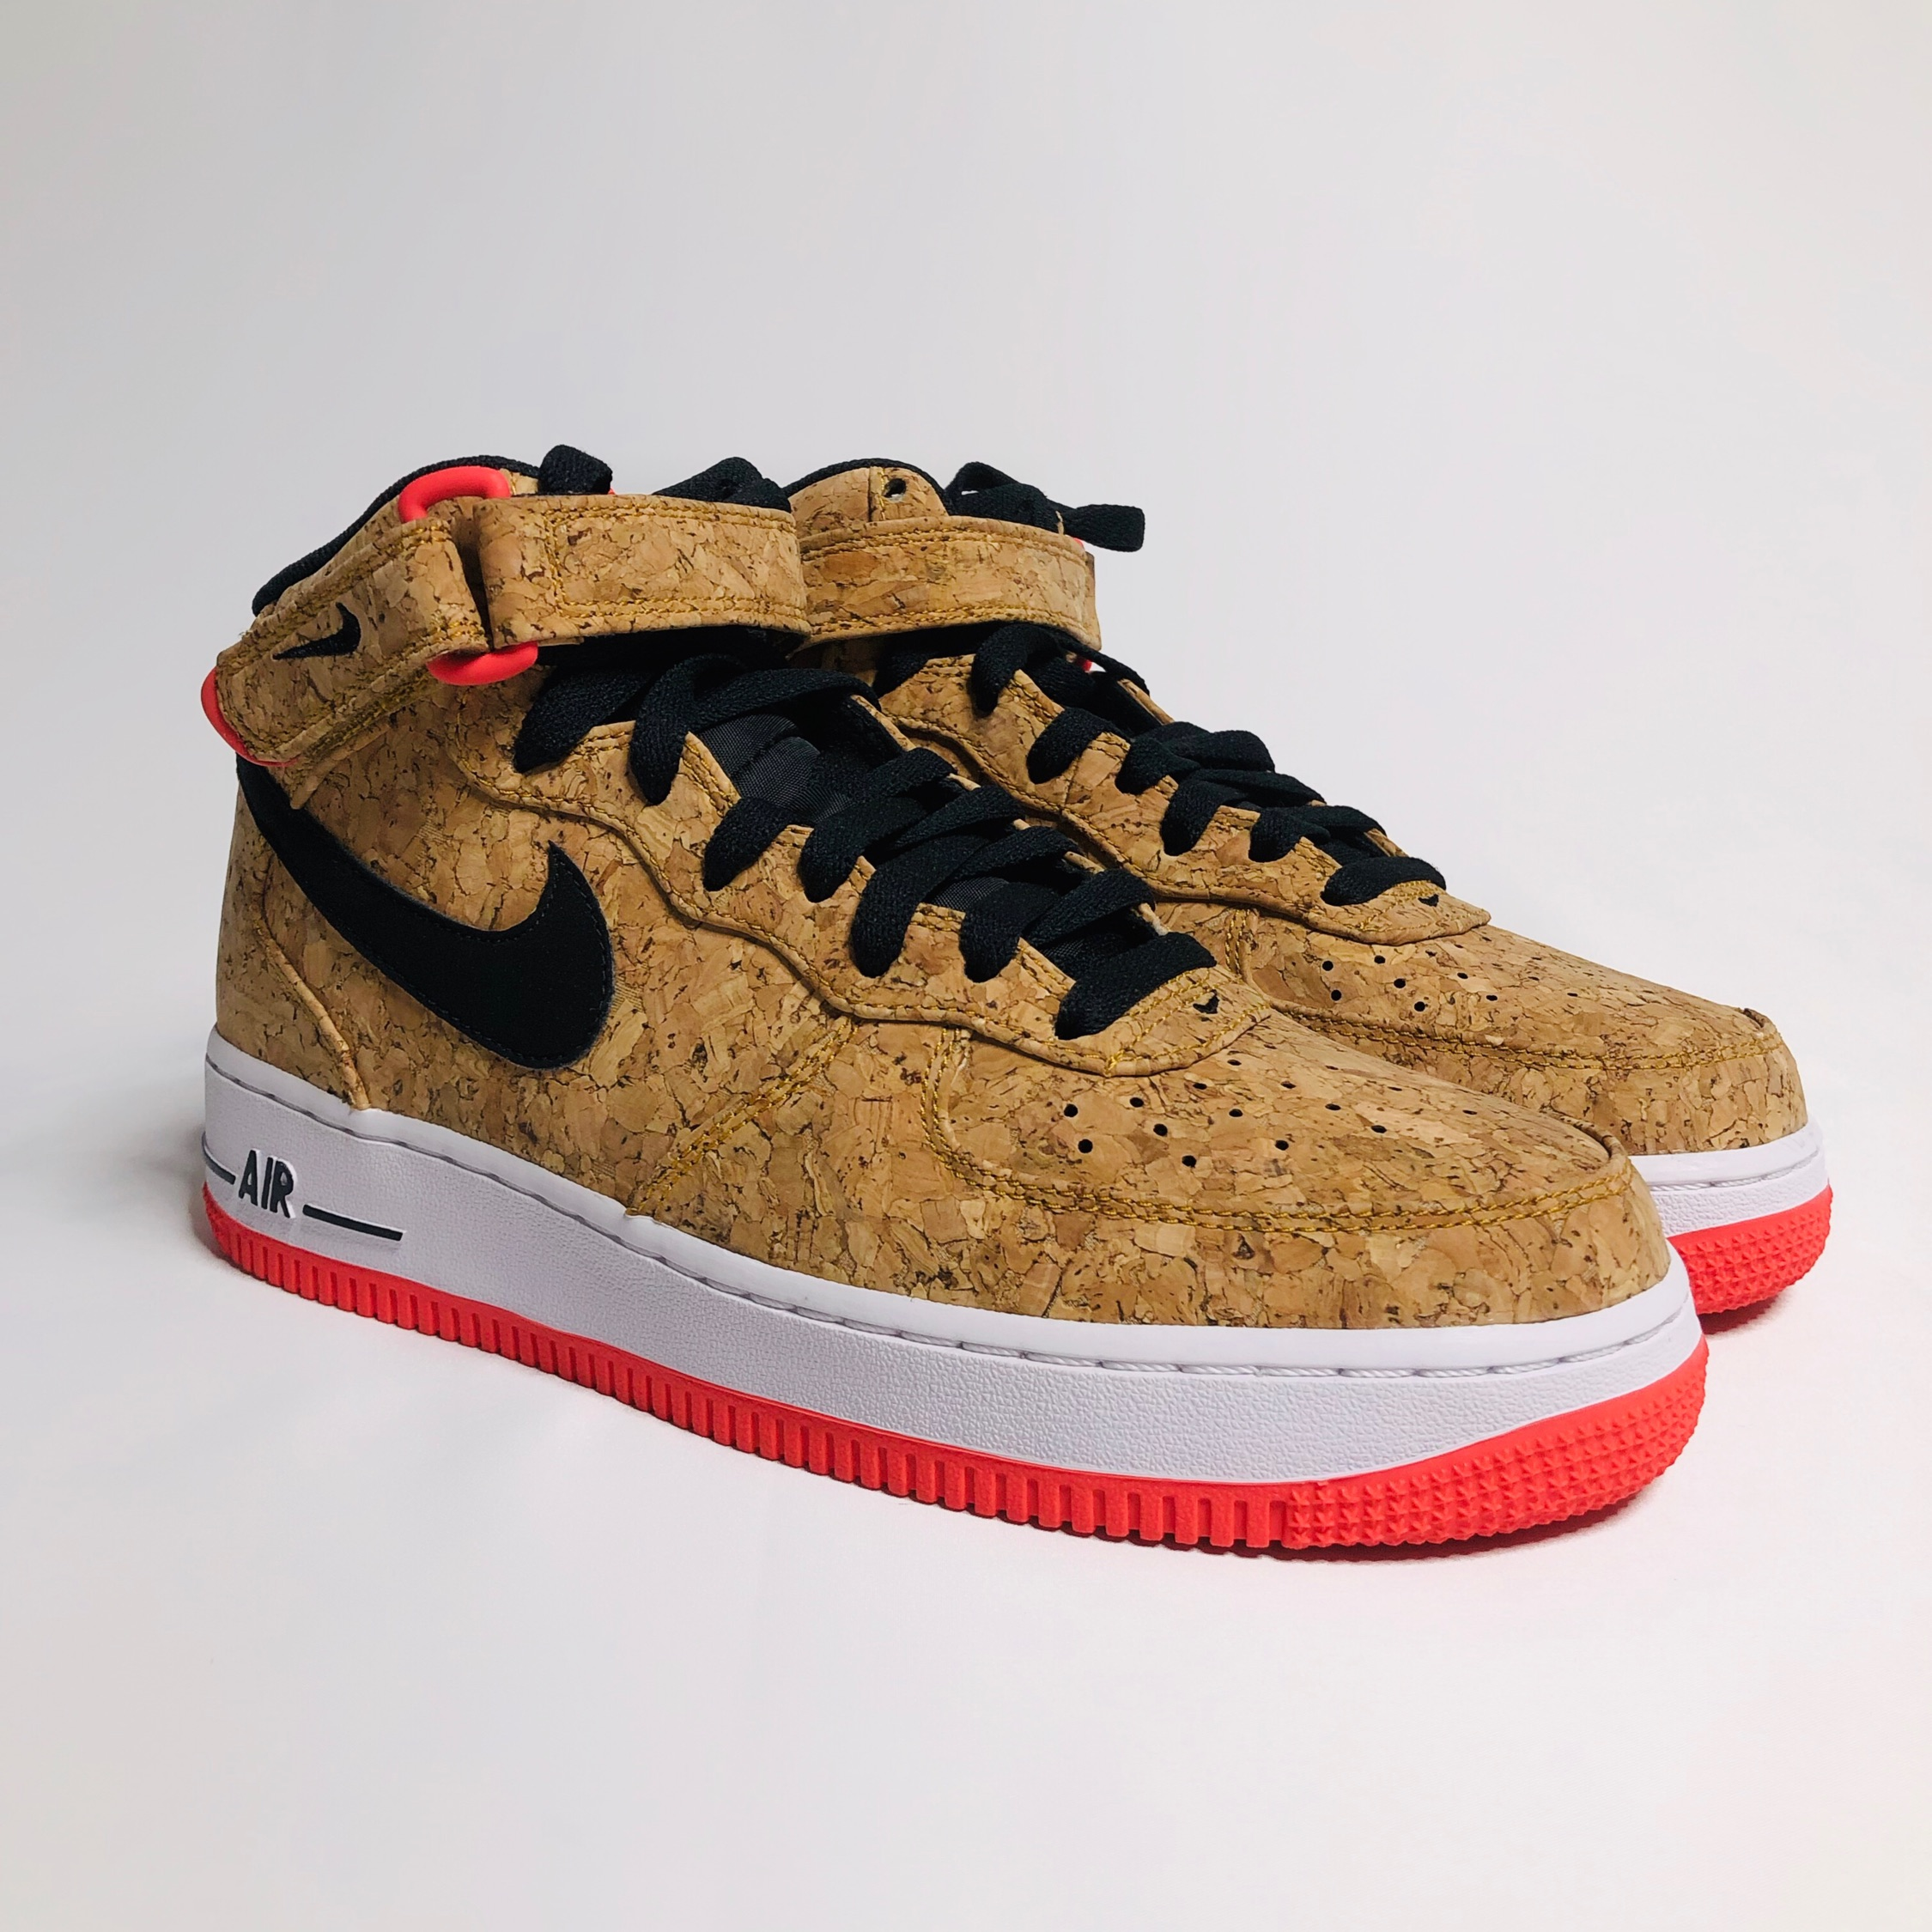 detailed look 4b2dc 2fcf7 Nike Air Force 1 Mid Cork